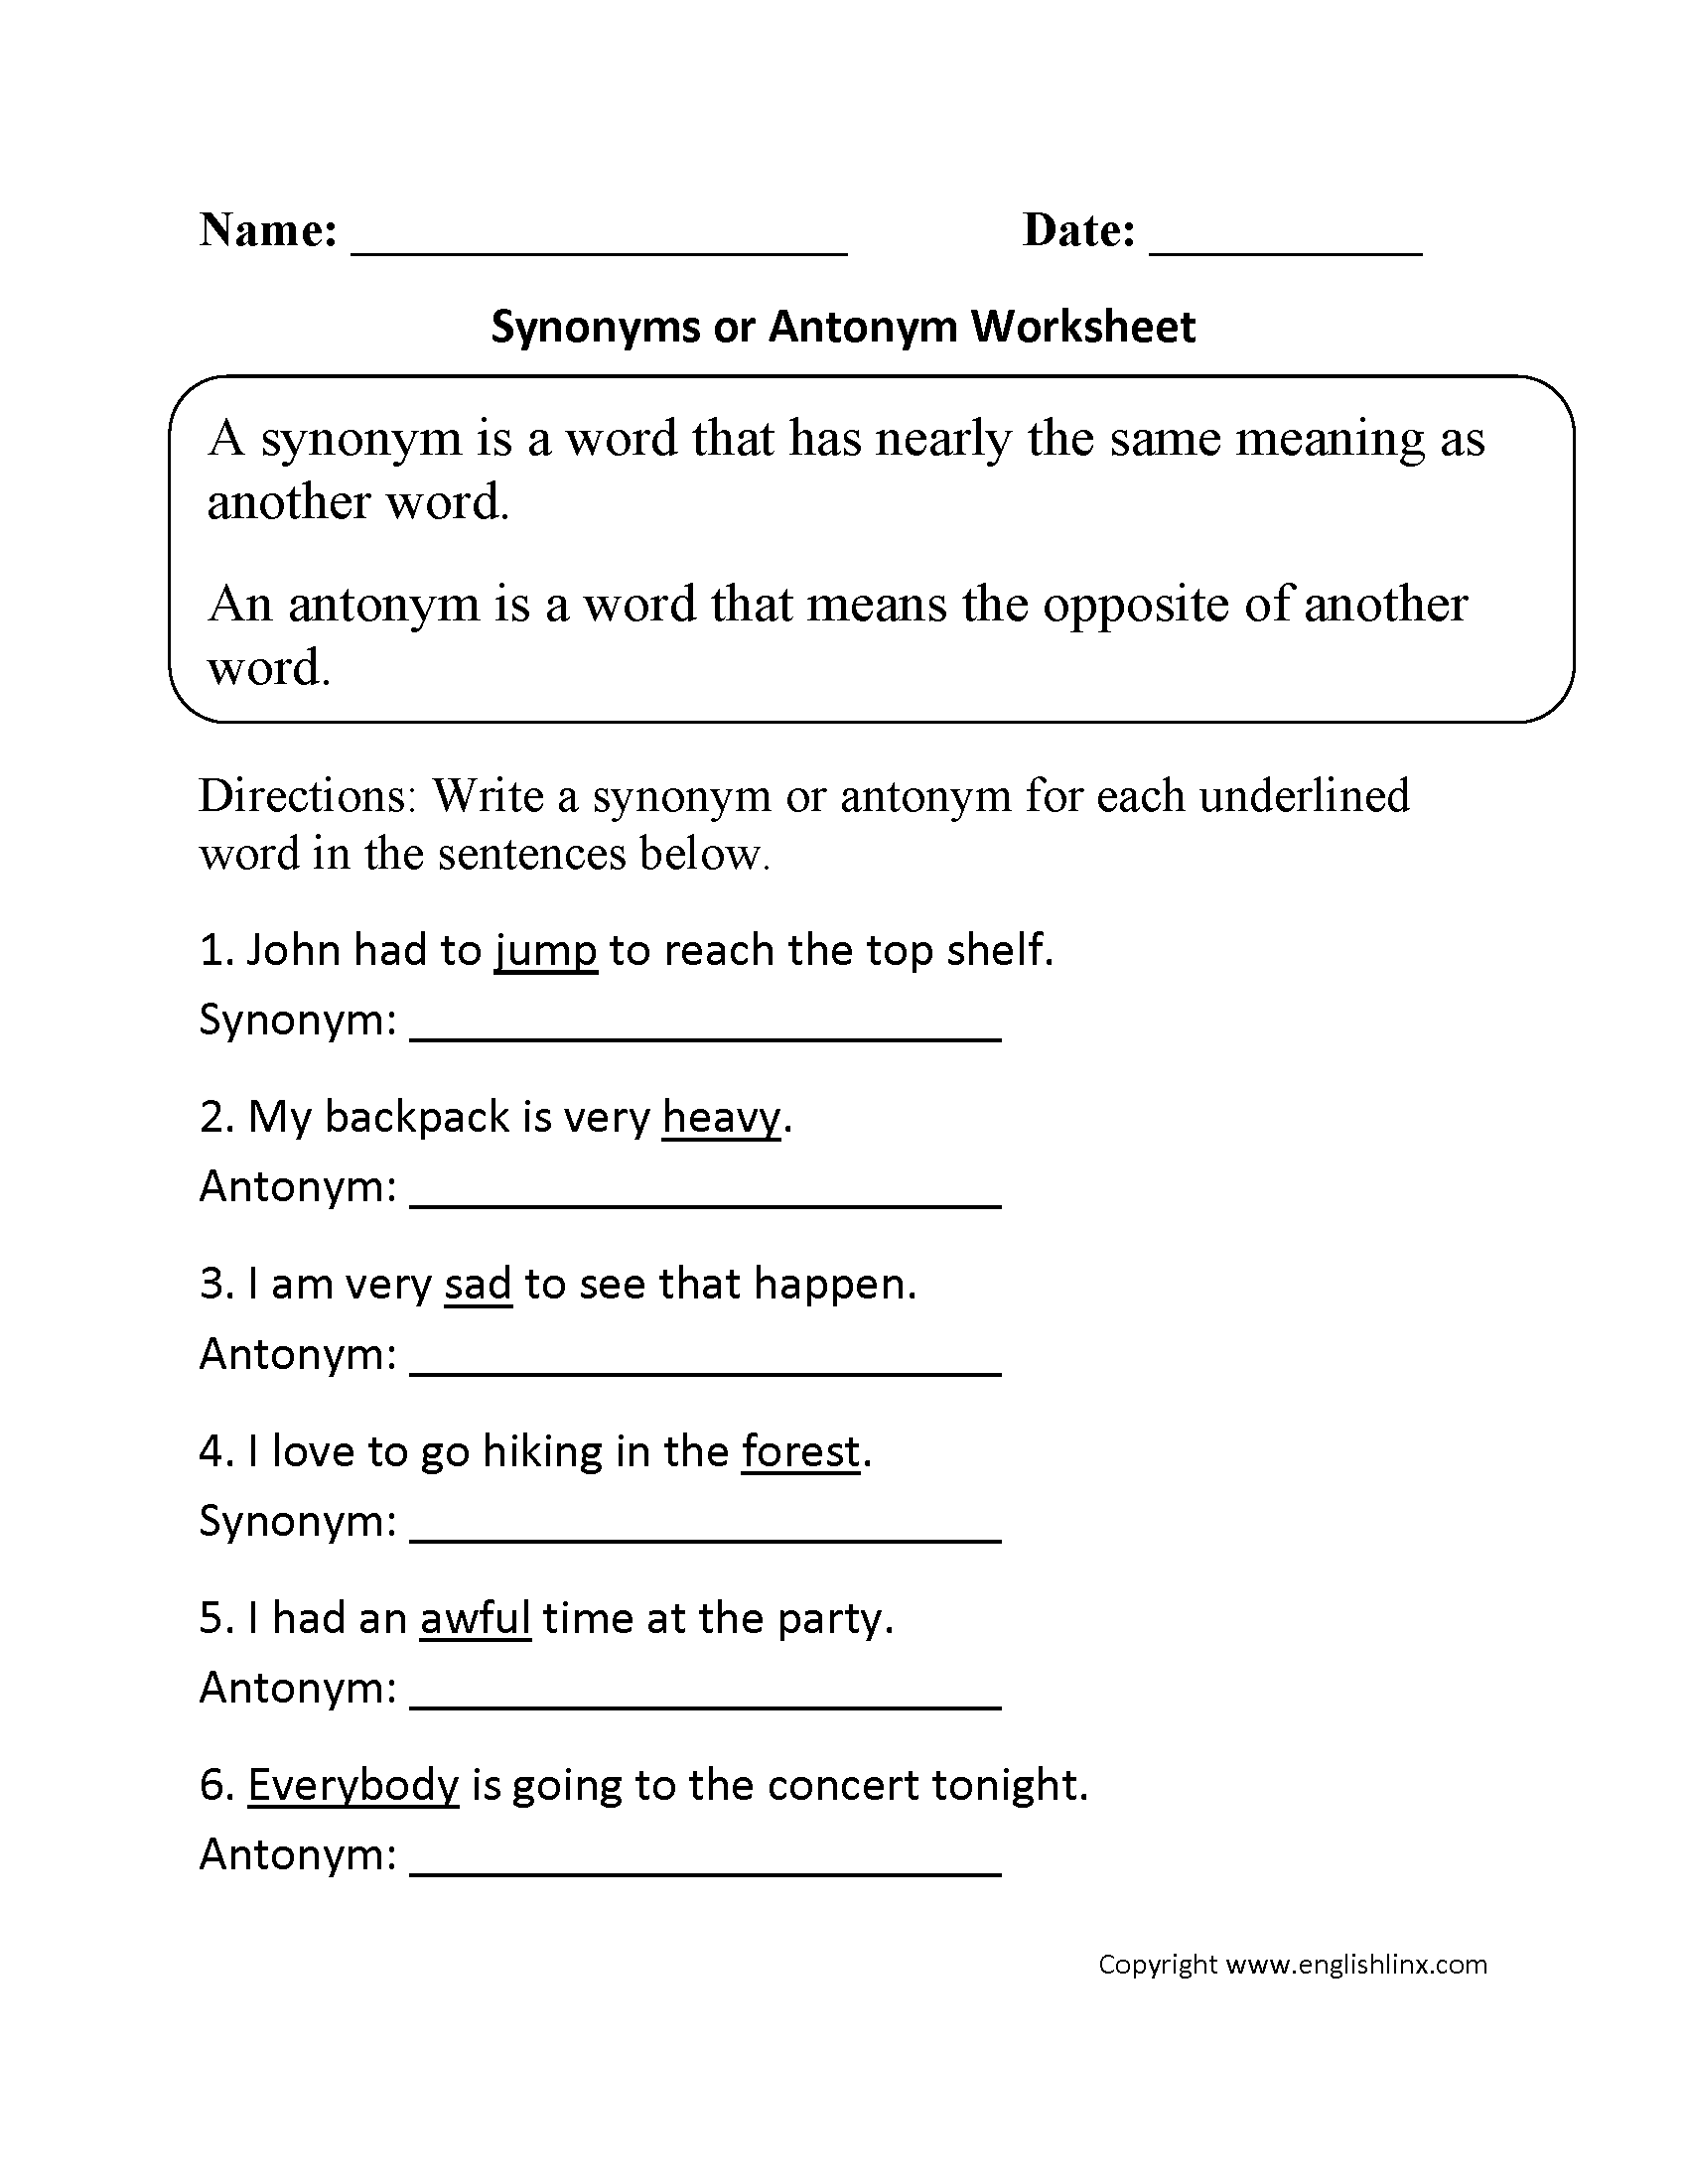 Vocabulary Worksheets | Synonym and Antonym Worksheets